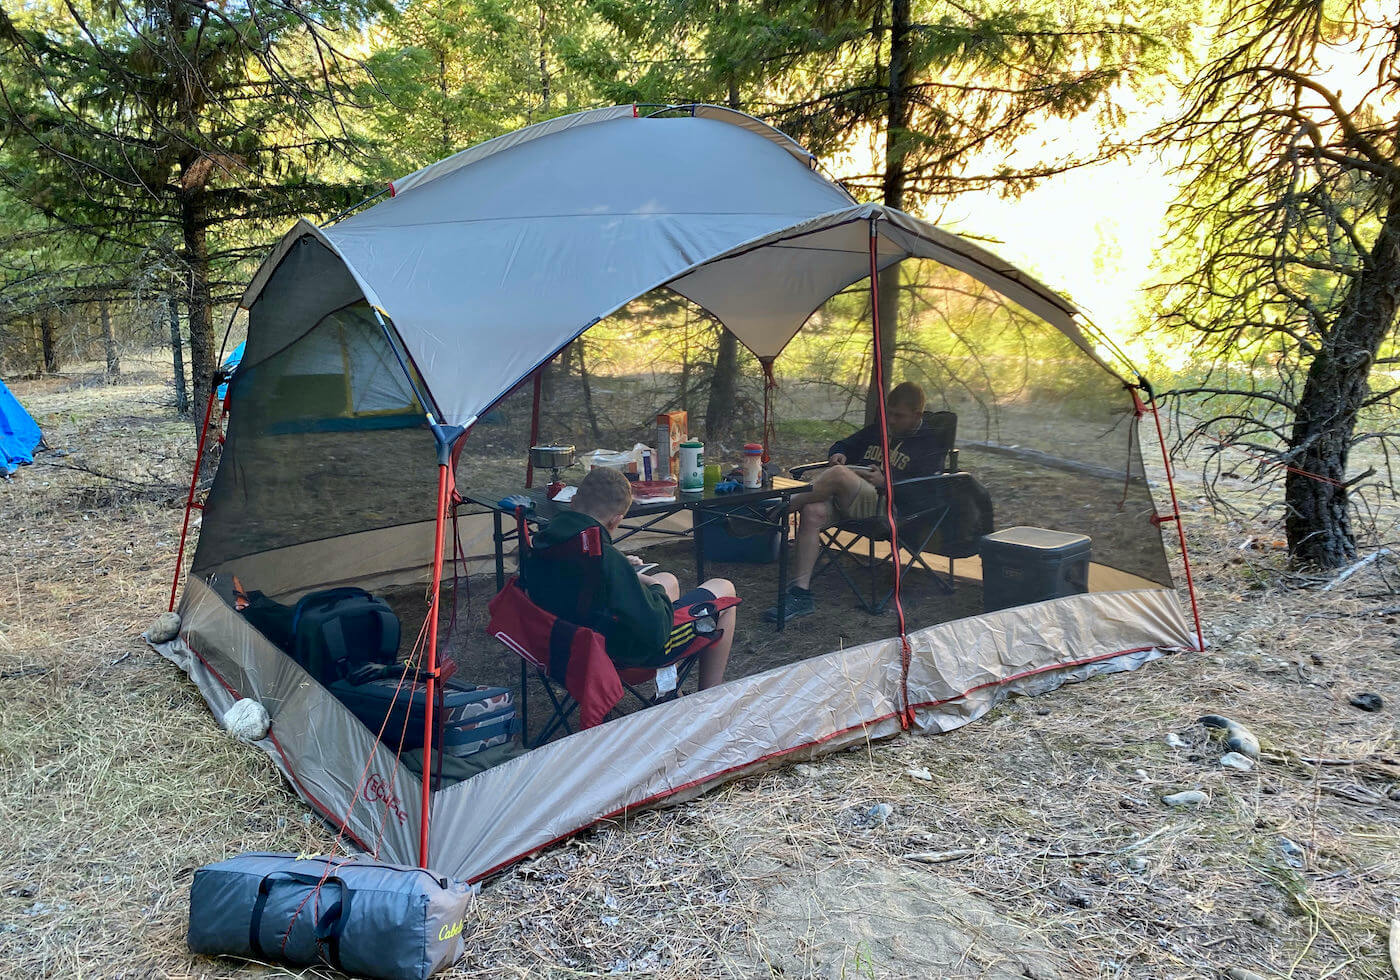 This testing and review photo shows the Bass Pro Shops Eclipse Refuge Screen House being used while camping.